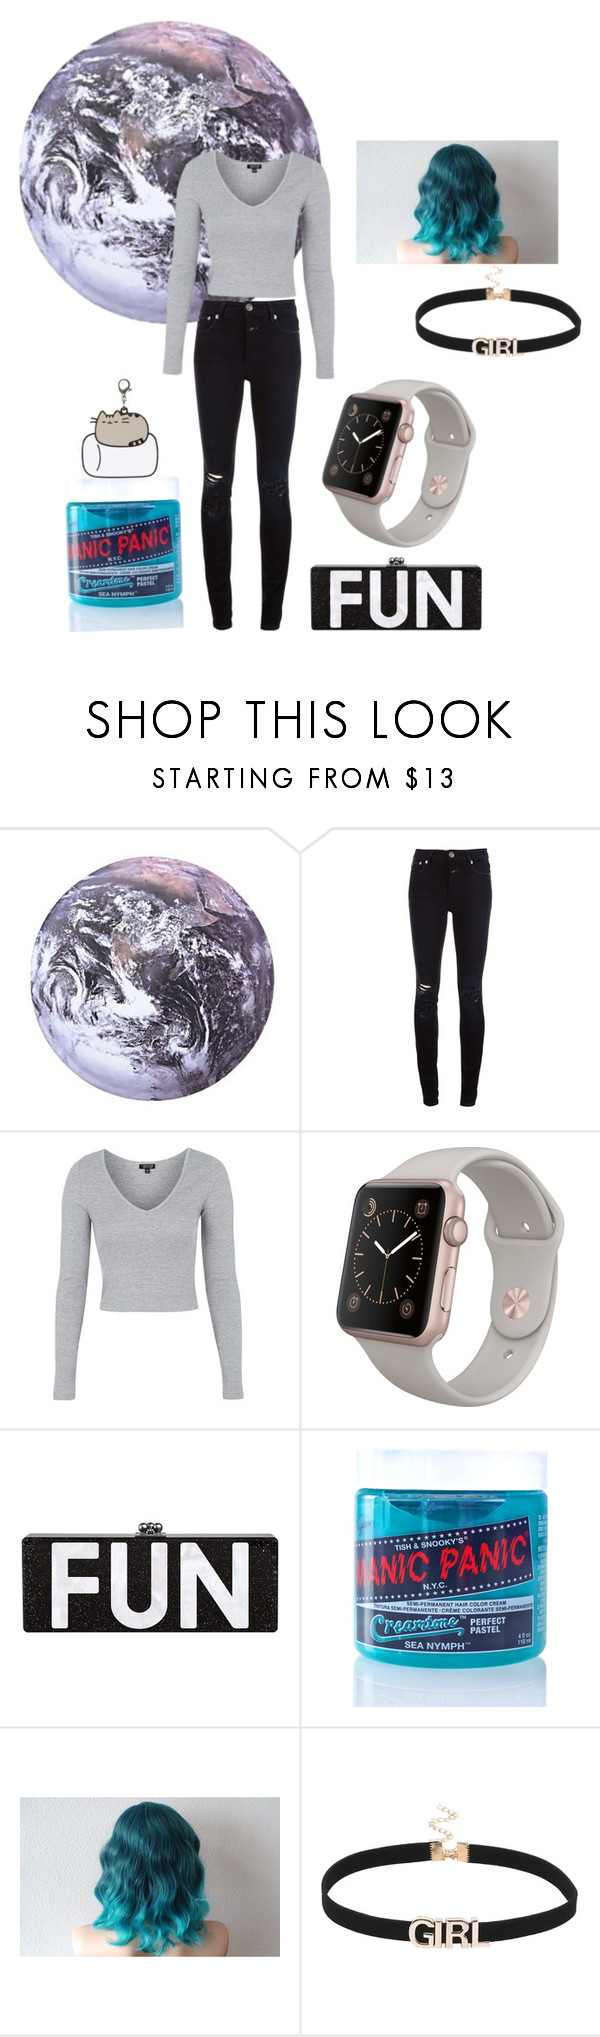 """""""Untitled #219"""" by november17 ❤ liked on Polyvore featuring Kikkerland, Closed, Topshop and Manic Panic NYC"""